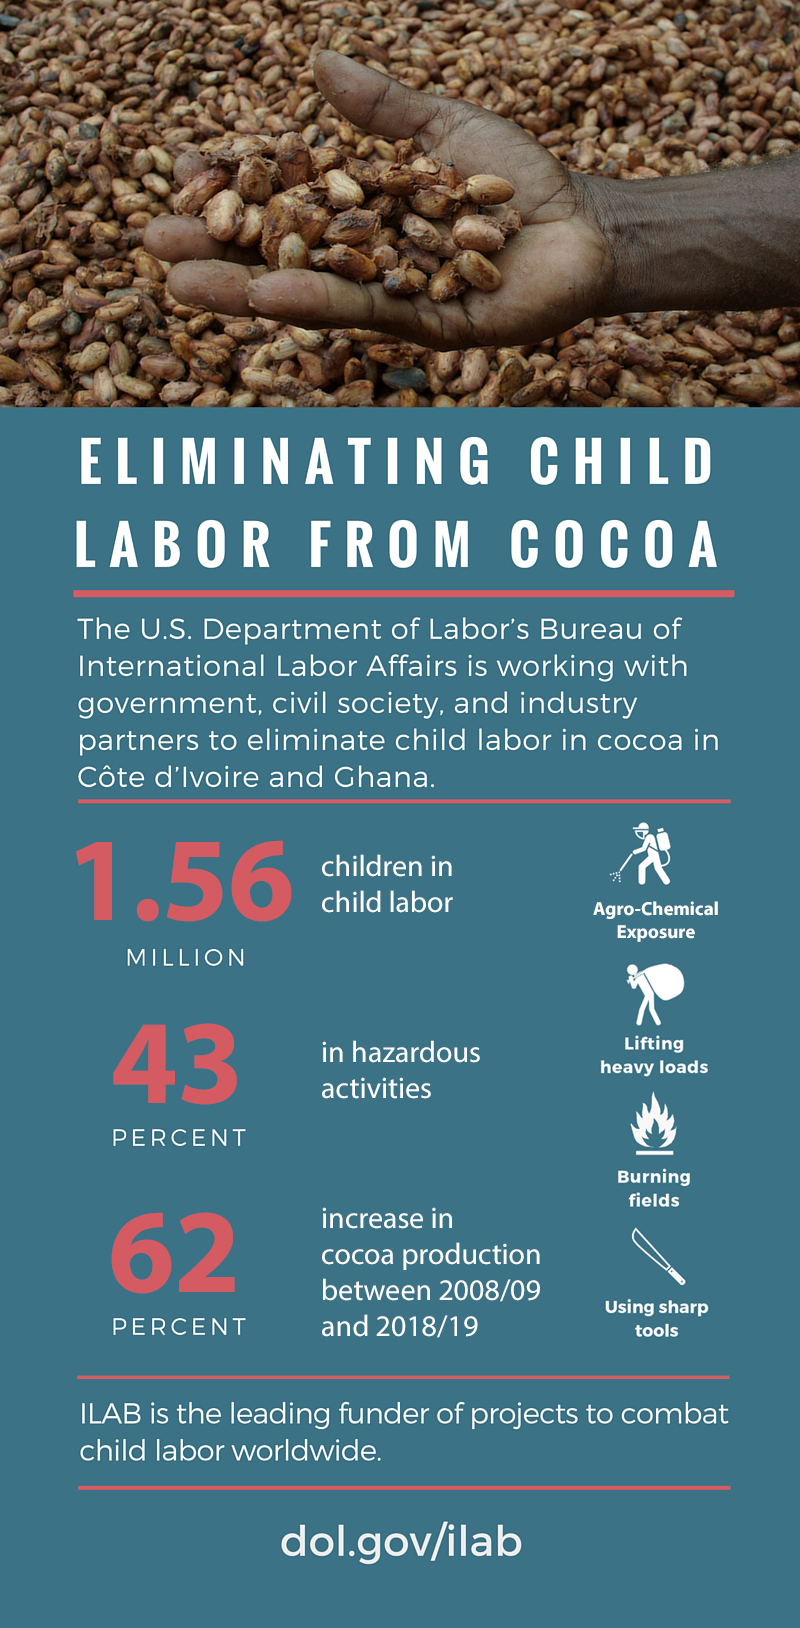 Eliminating Child Labor from Cocoa Infographic